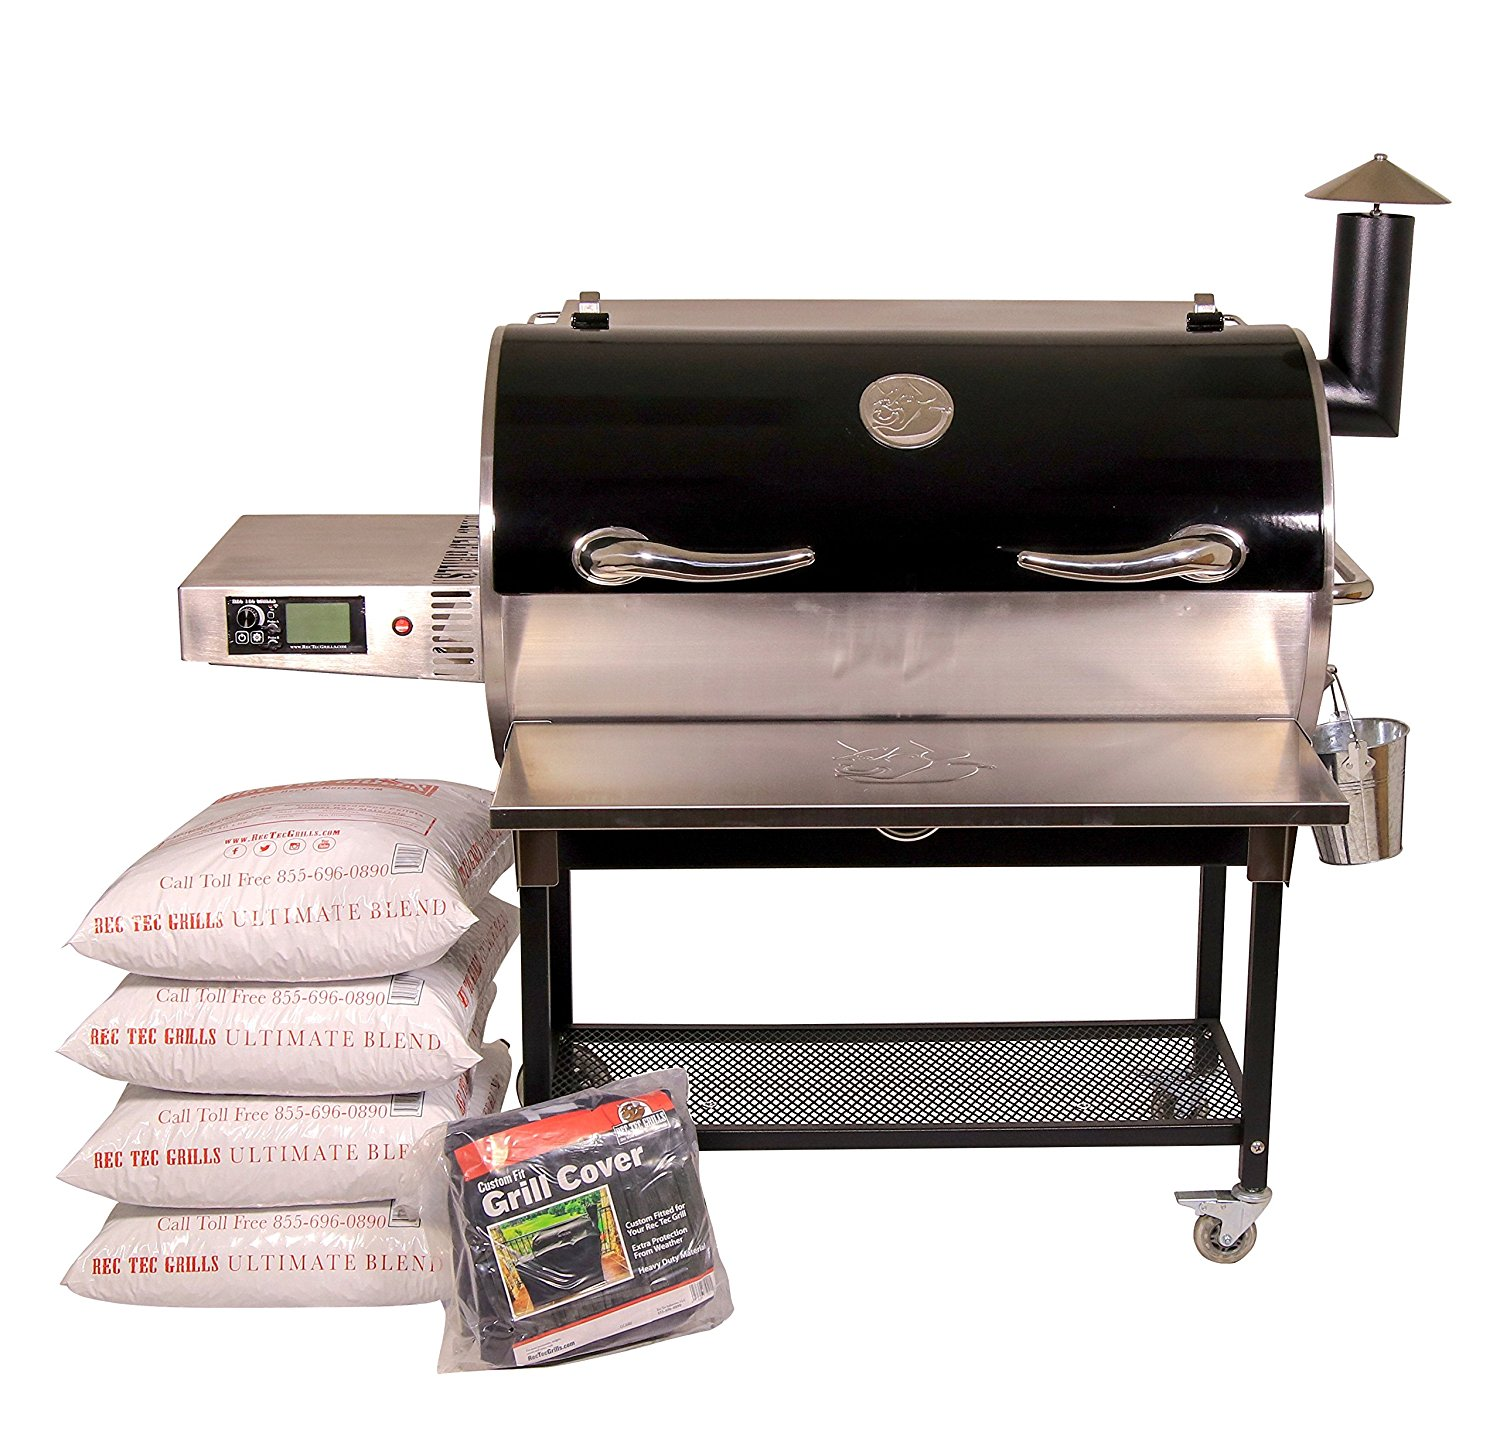 Bull Wood Pellet Stainless Steel Covered Grill From Rec Tec